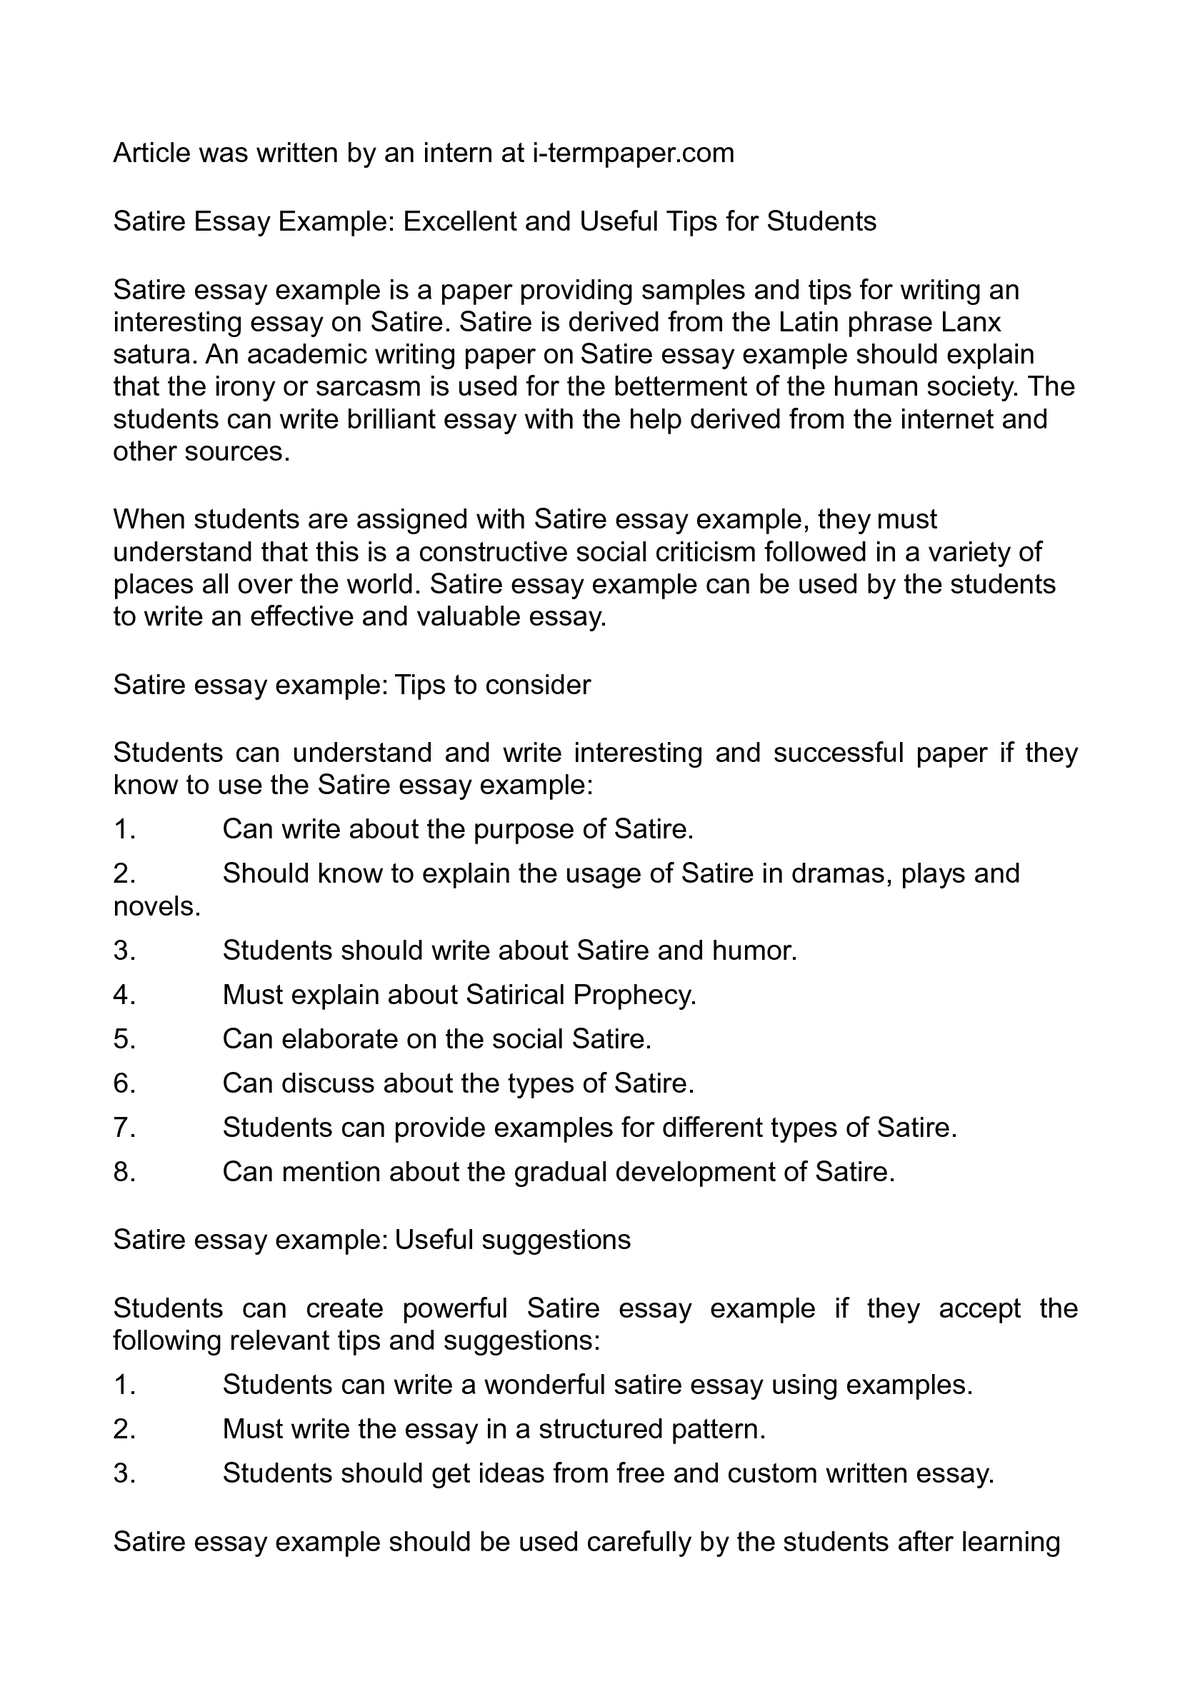 Subjects for a satire essay